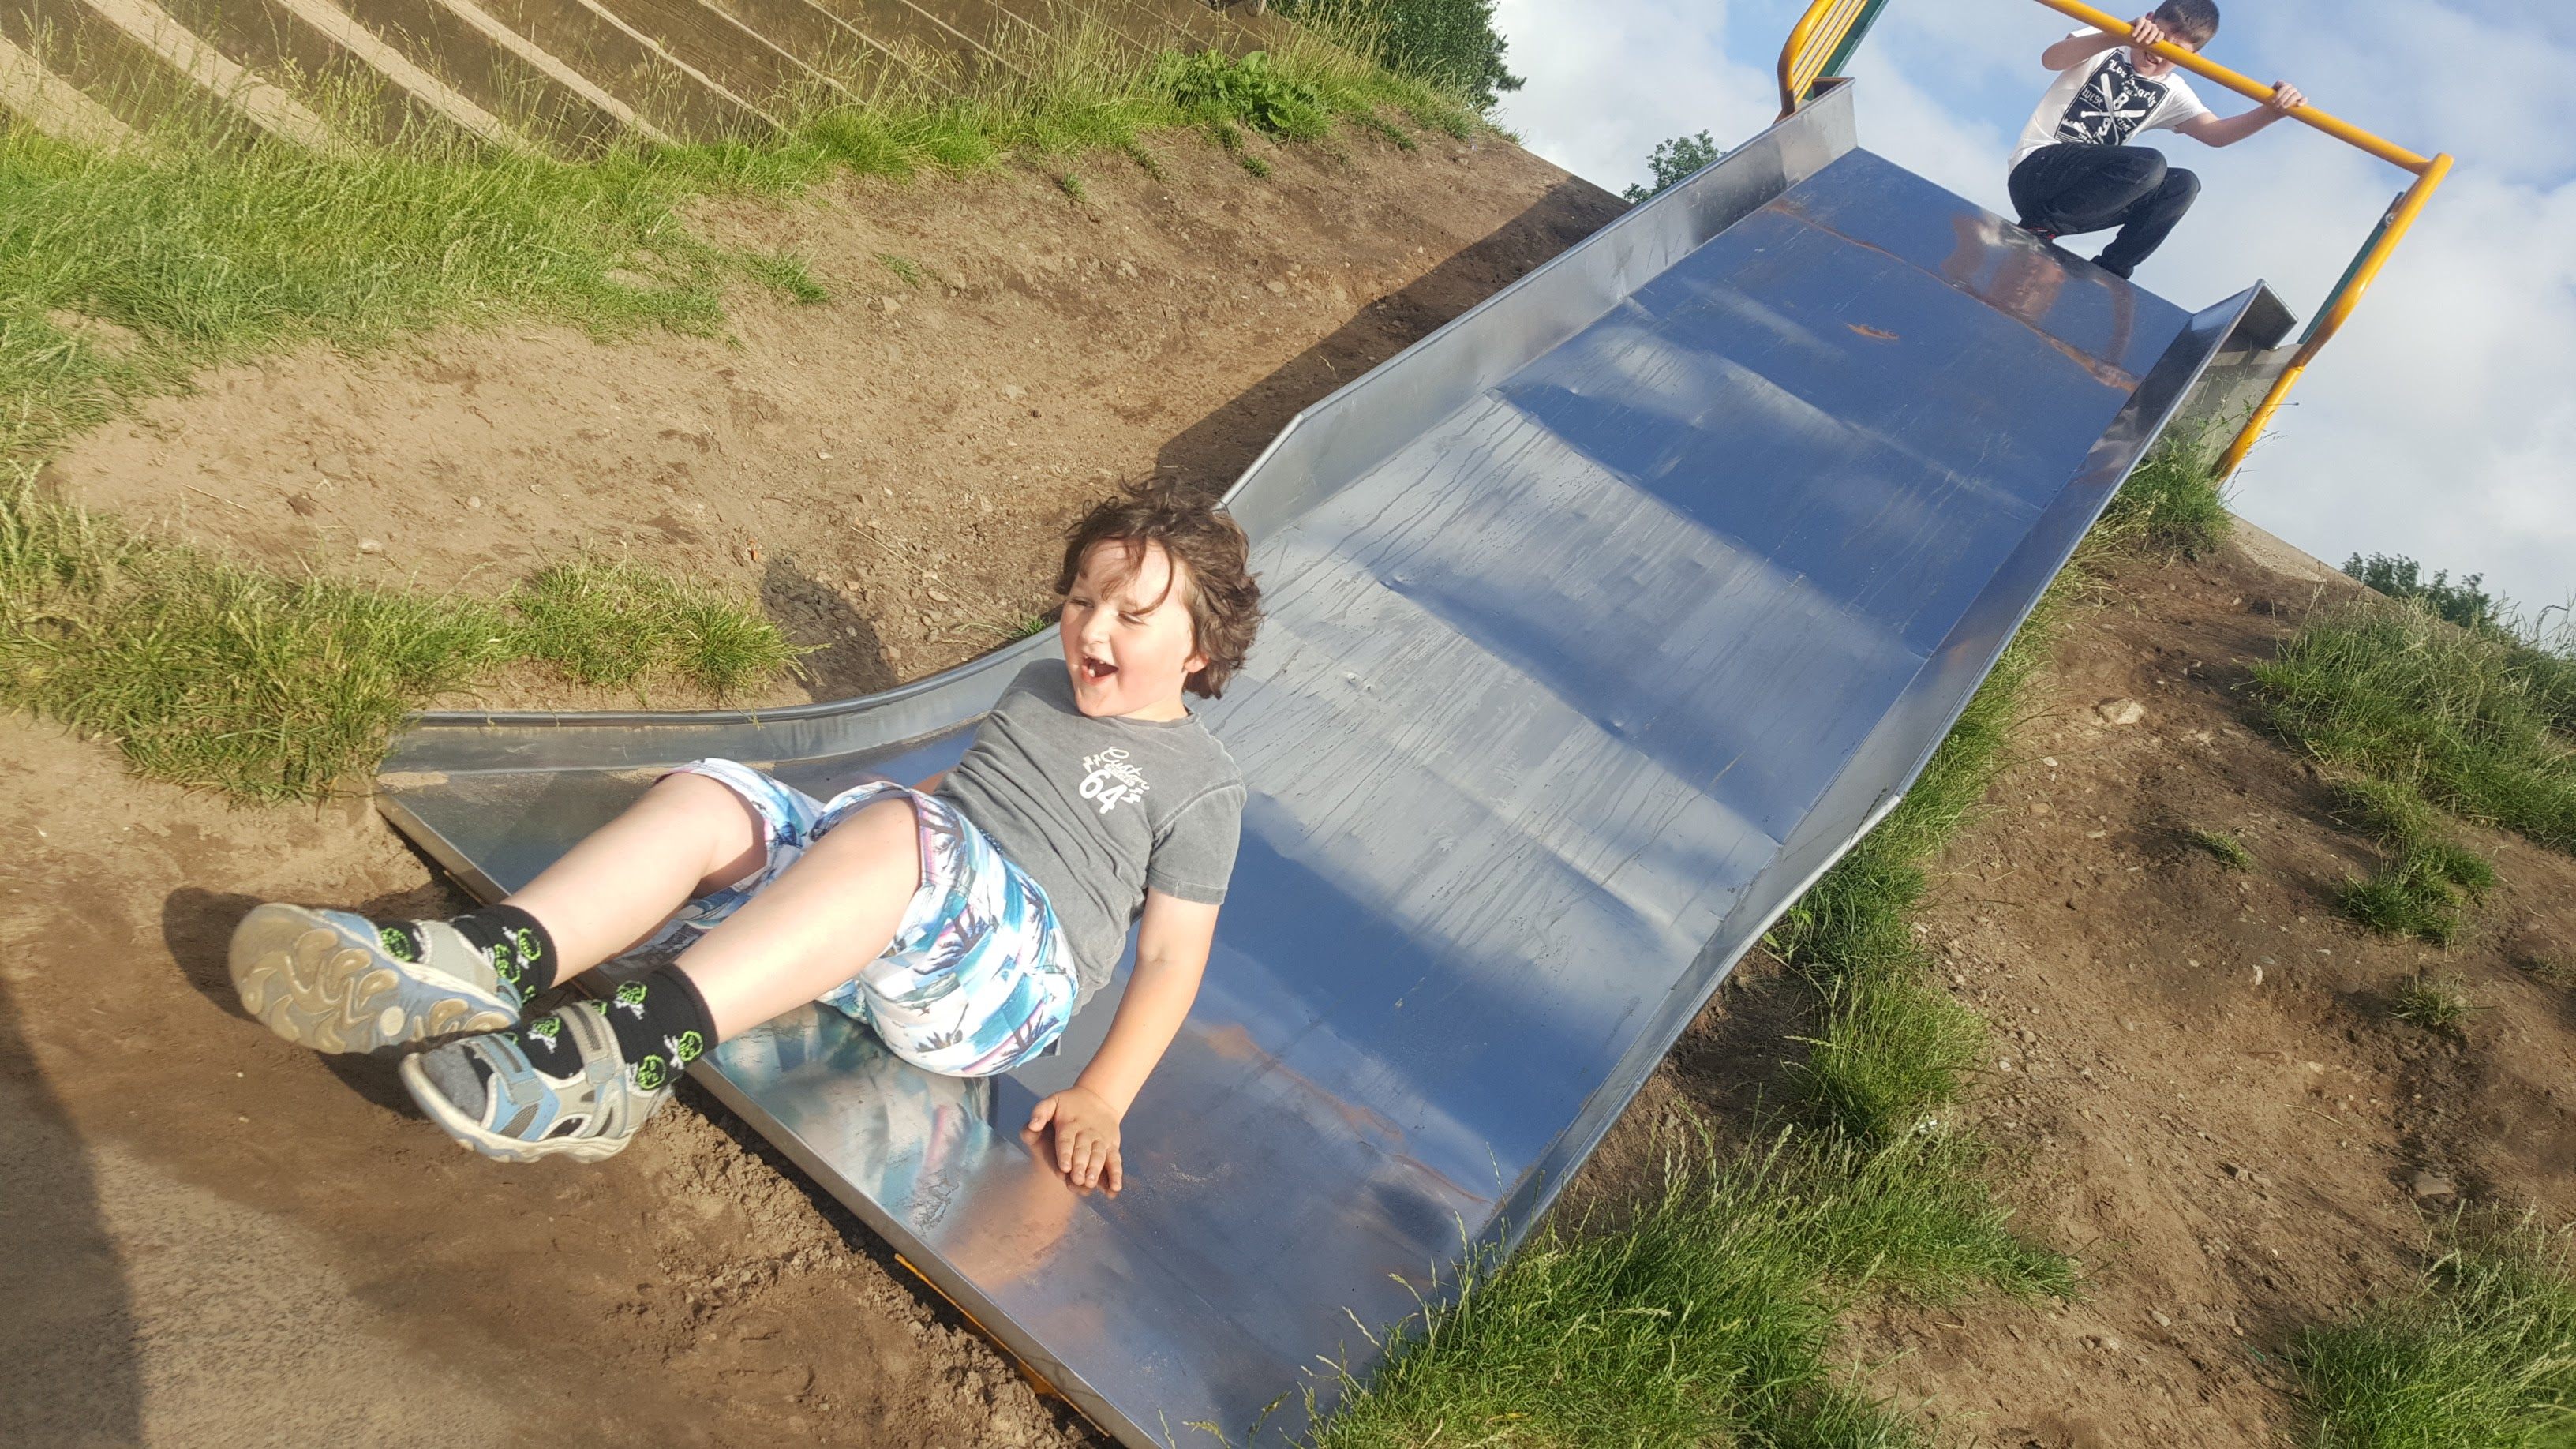 On The Slide